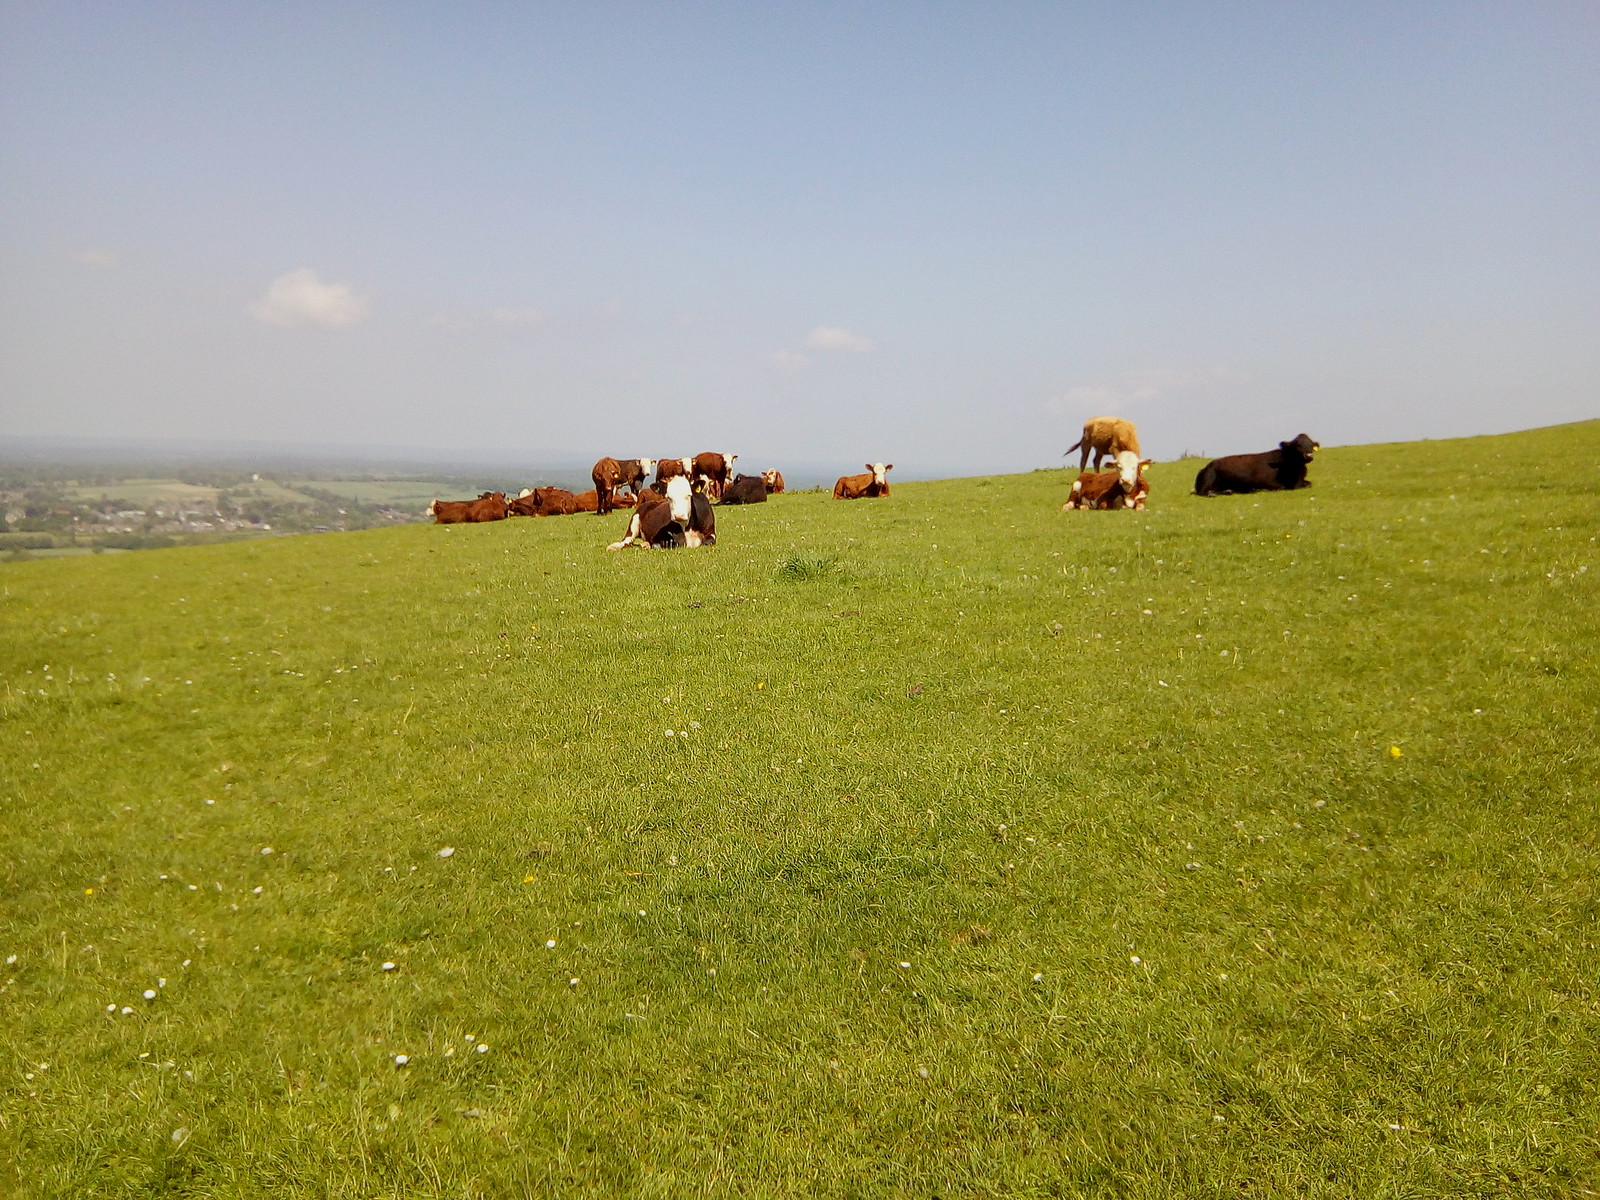 Heifers or Bullocks ? by Jack and Gill windmills Keeping a close eye on the bipeds